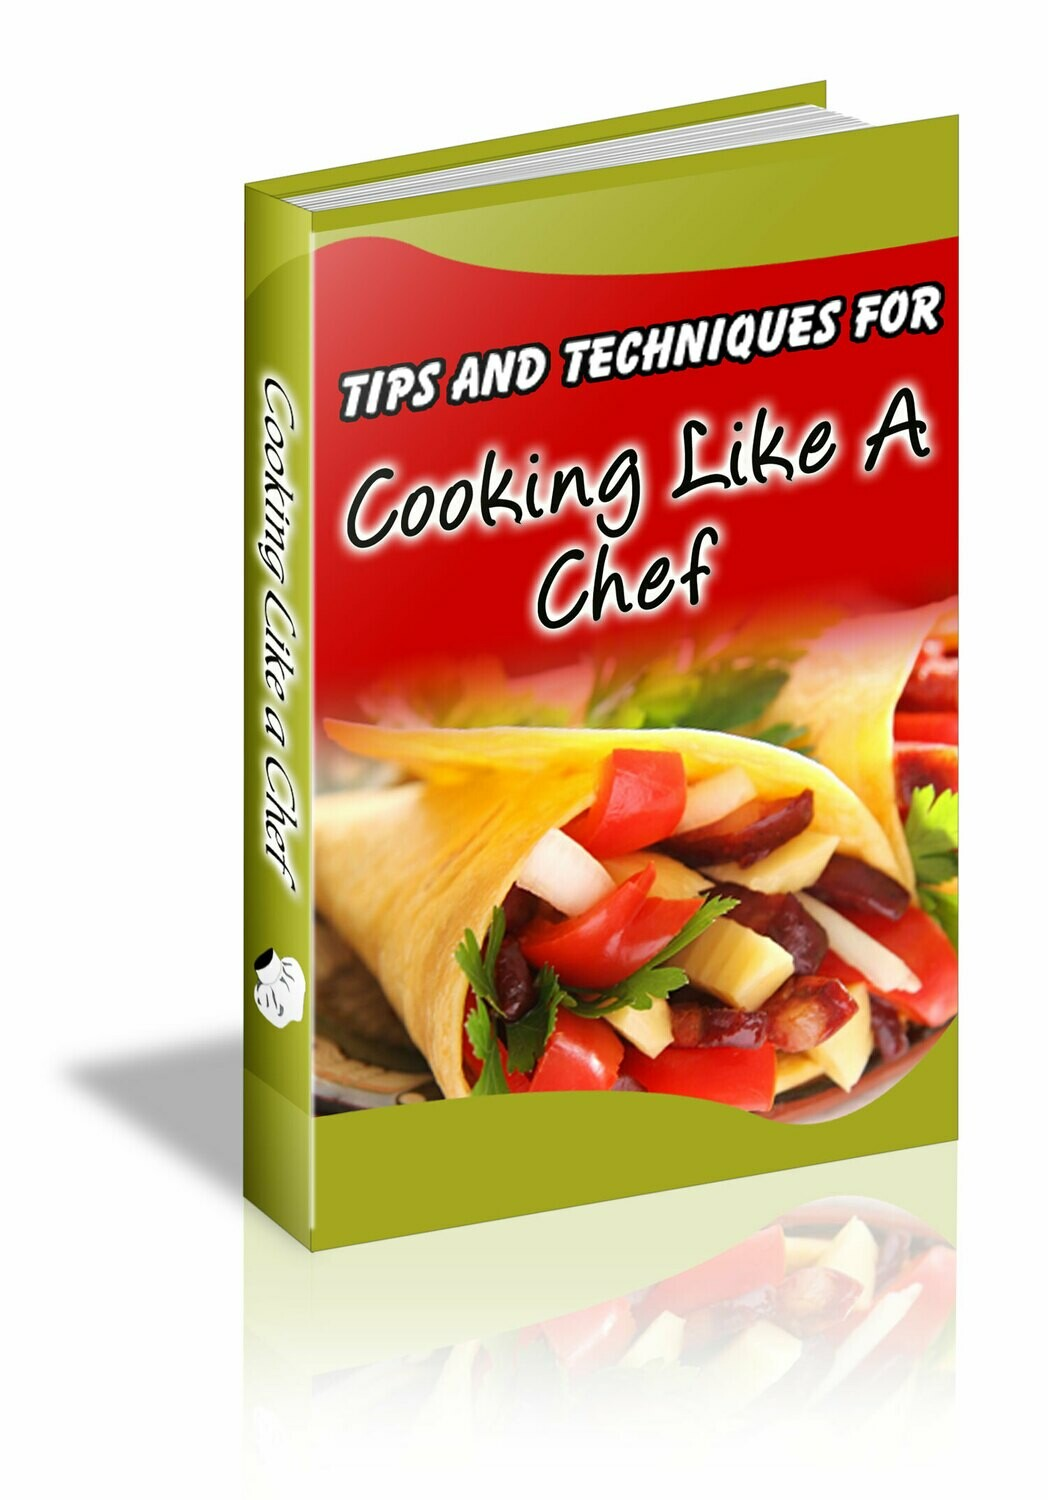 Tips and Techniques for Cooking like a Chef